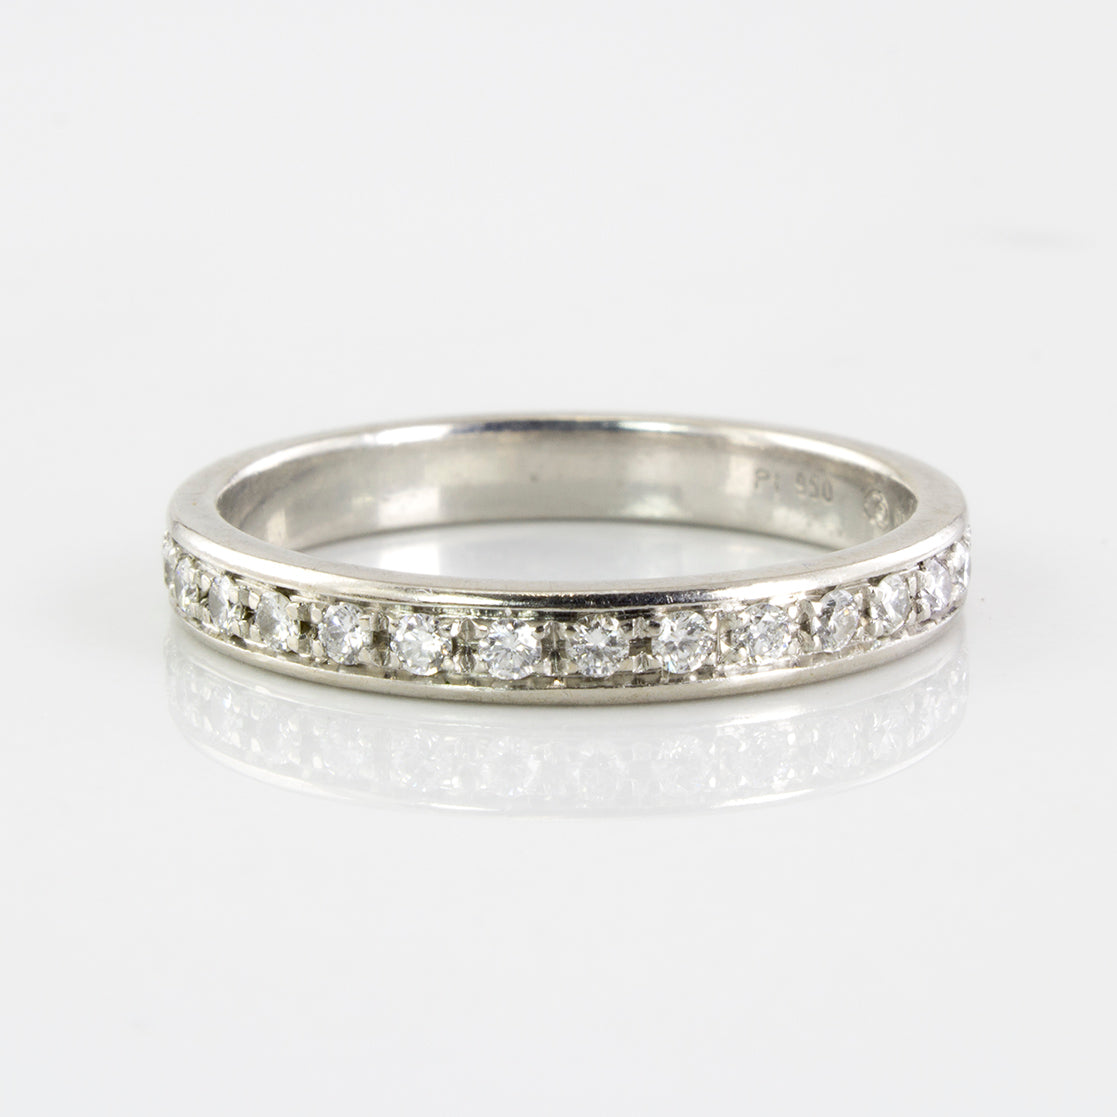 Platinum Diamond Eternity Band | 0.60 ctw | SZ 8.25 |